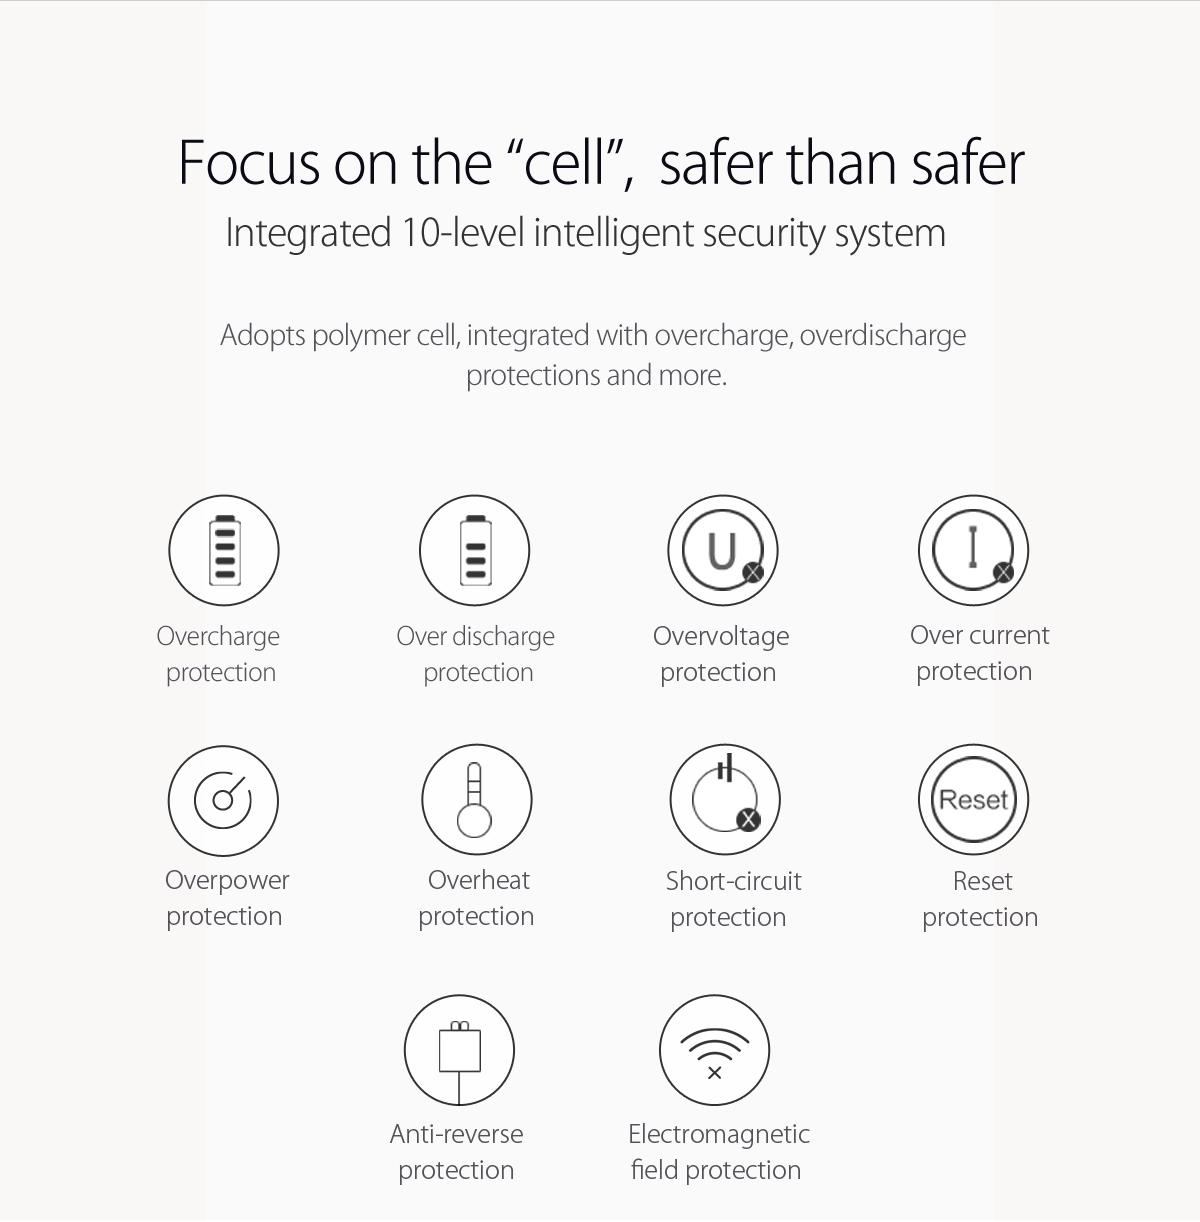 integrated 10-level intelligent security system